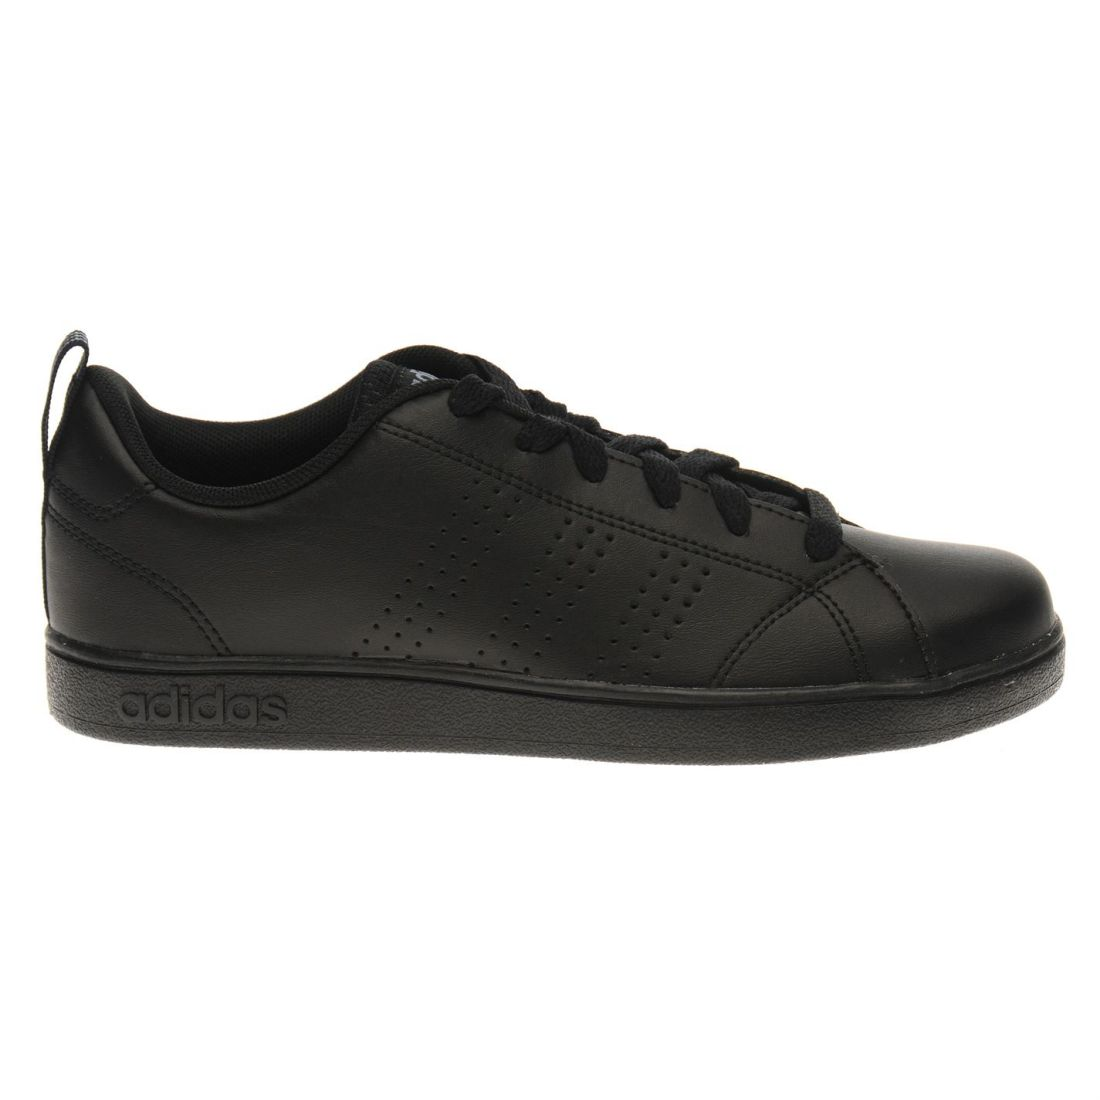 dacfe1250 adidas Neo VS Advantage Clean K Shoes Trainers Black Onyx Gazelle ...